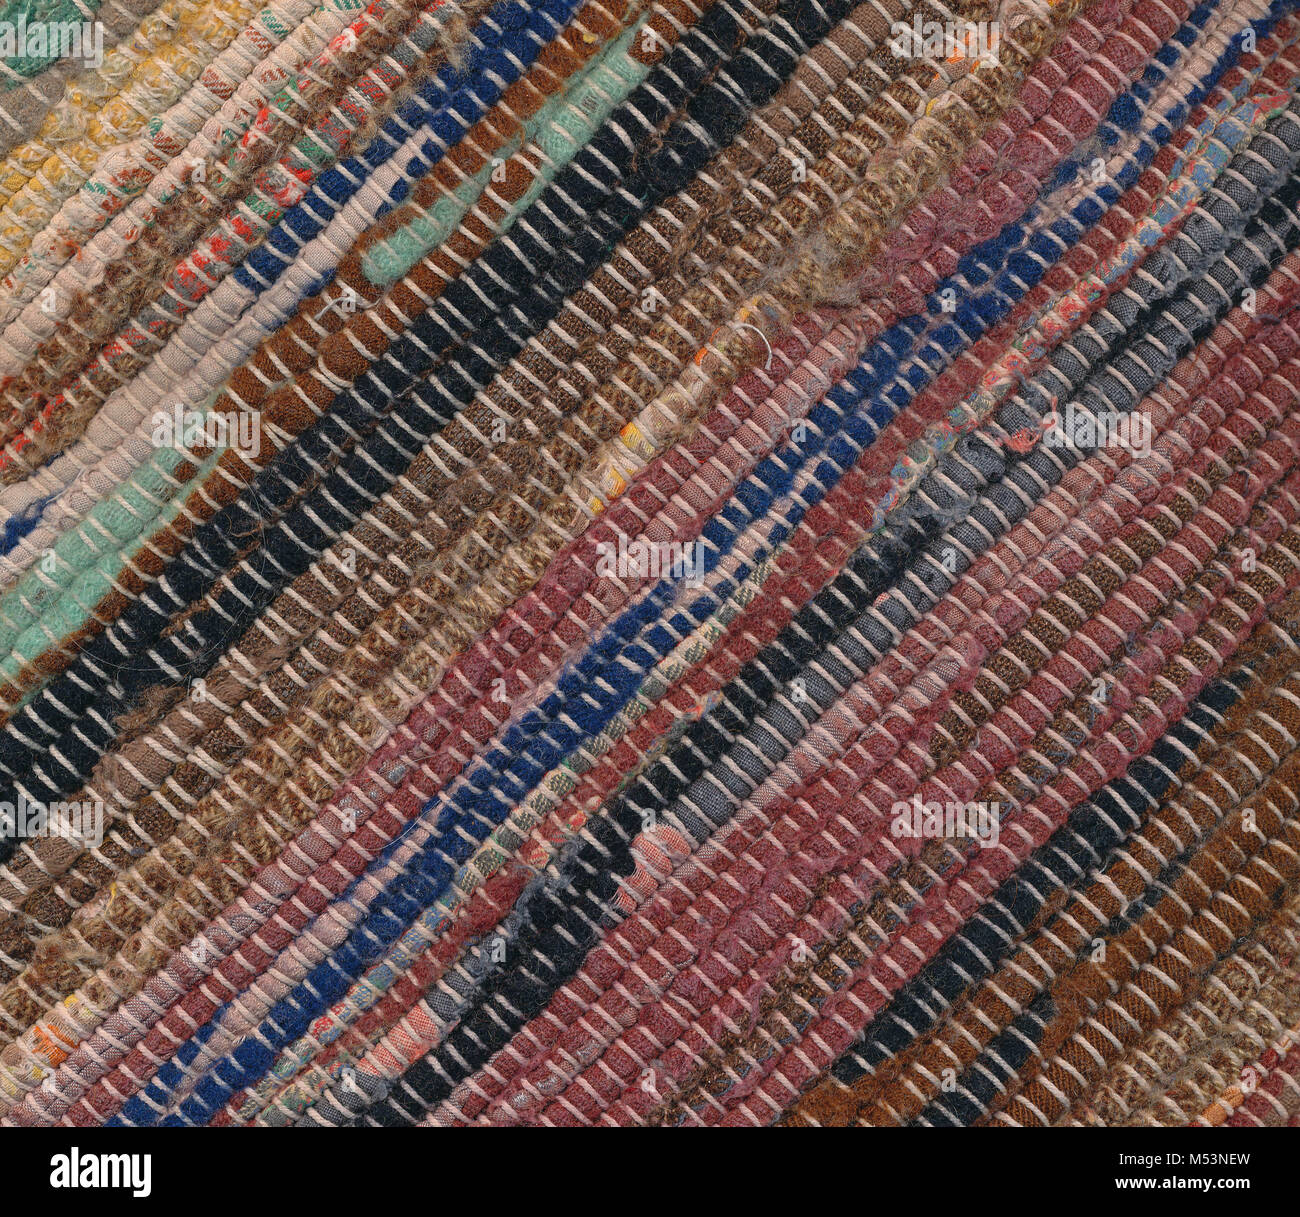 Diagonally closeup of old worn out striped rag rug - Stock Image